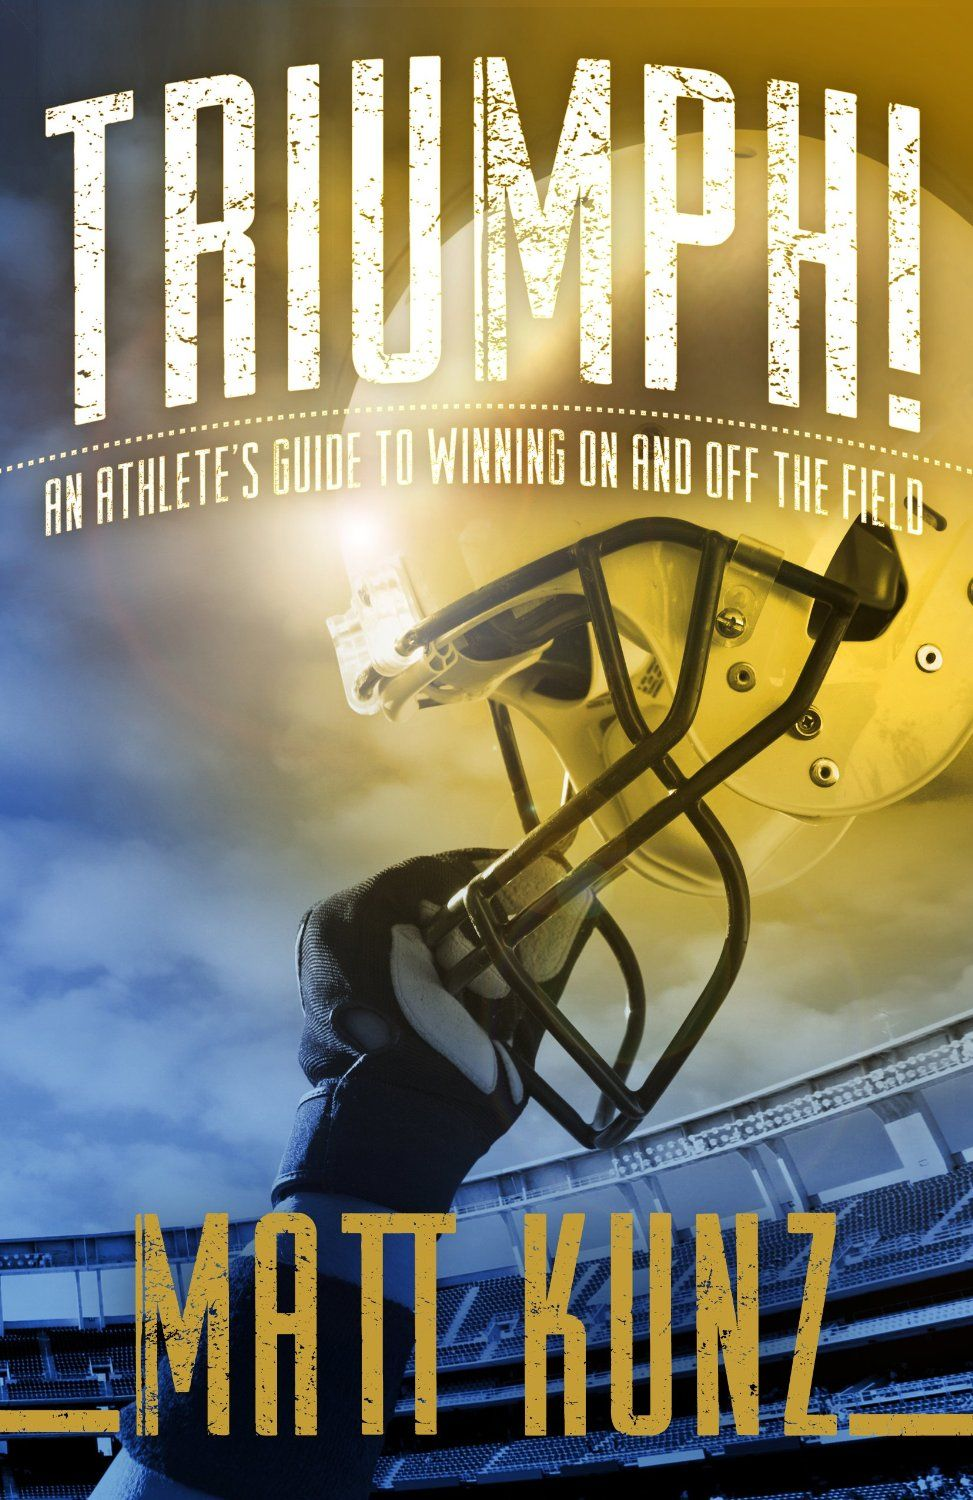 [June 20, 2015] Join Matt Kunz for a signing event at the